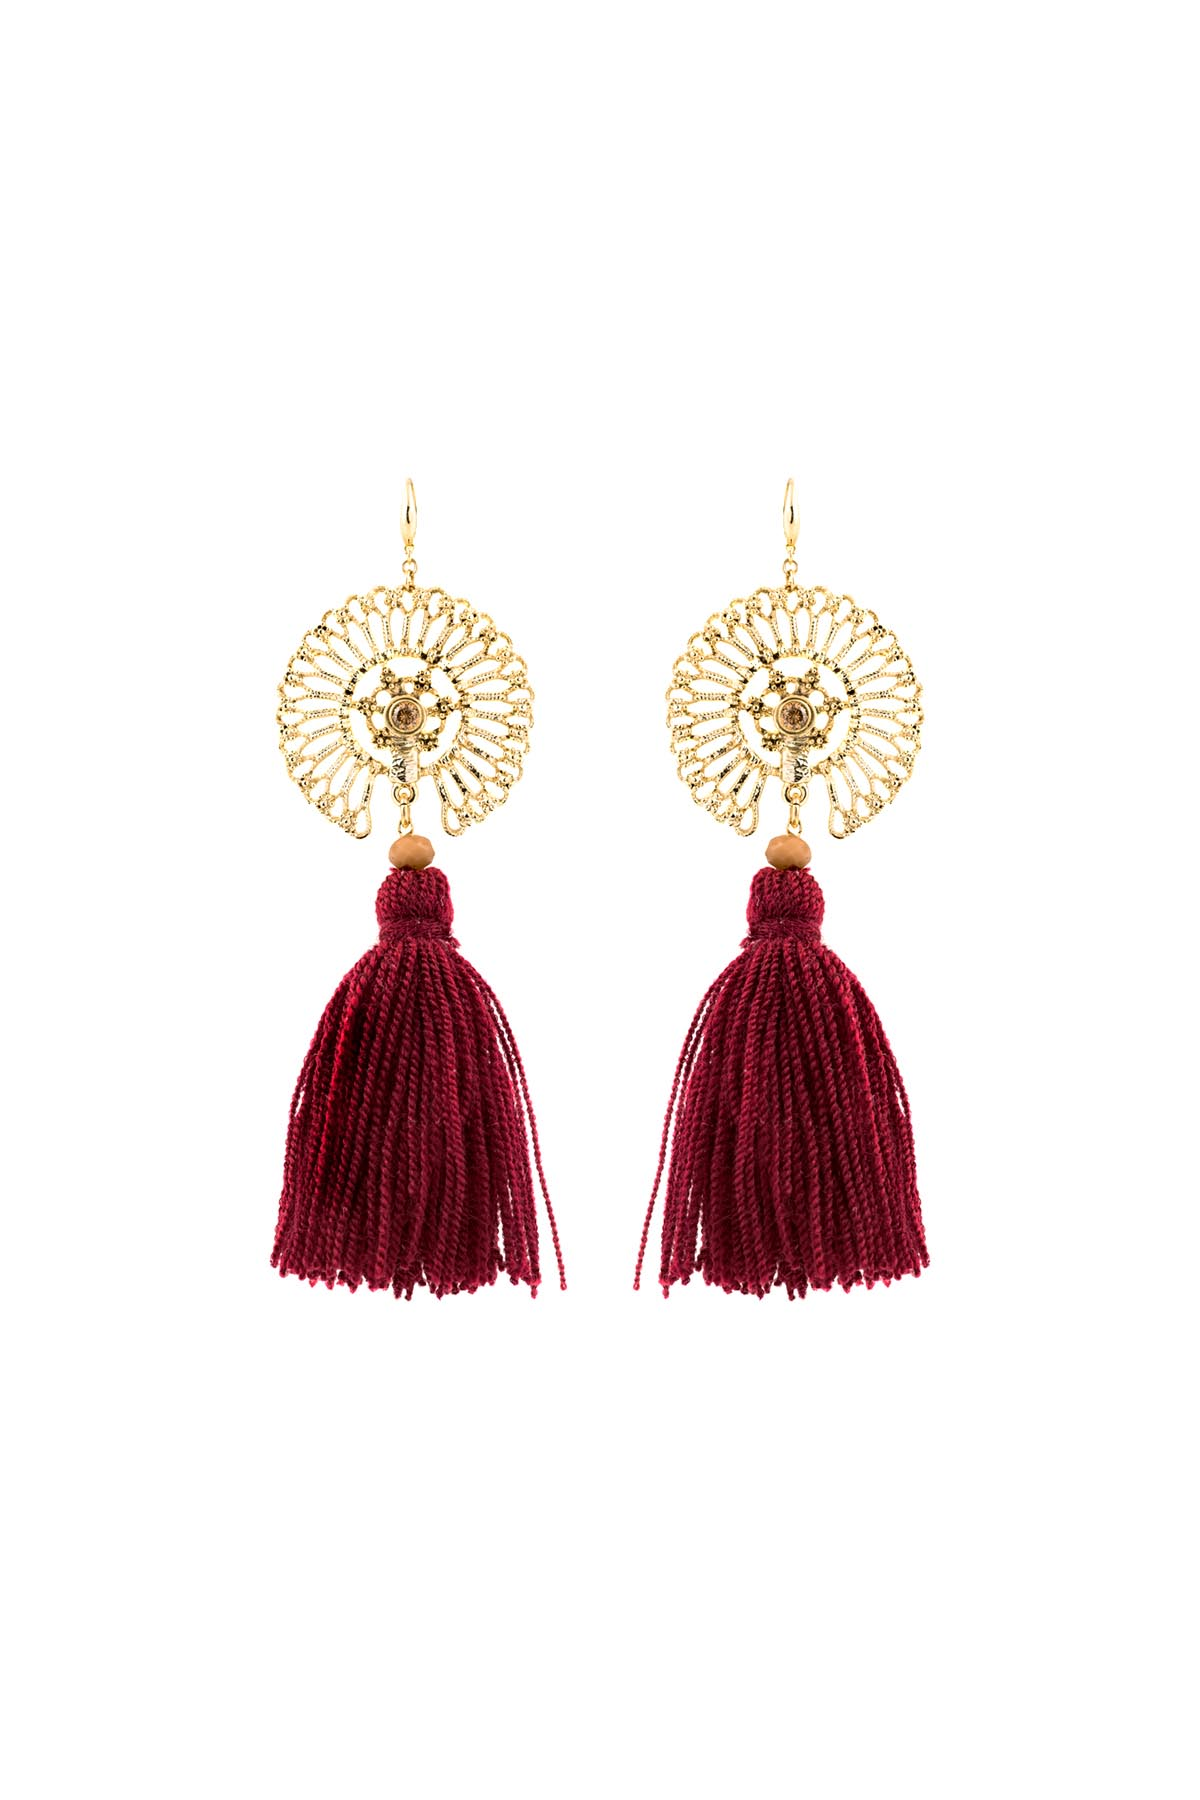 cefb7d4d5 DEEP RED TASSEL - Statement Earrings - Tasseled Dangle Earrings | APP